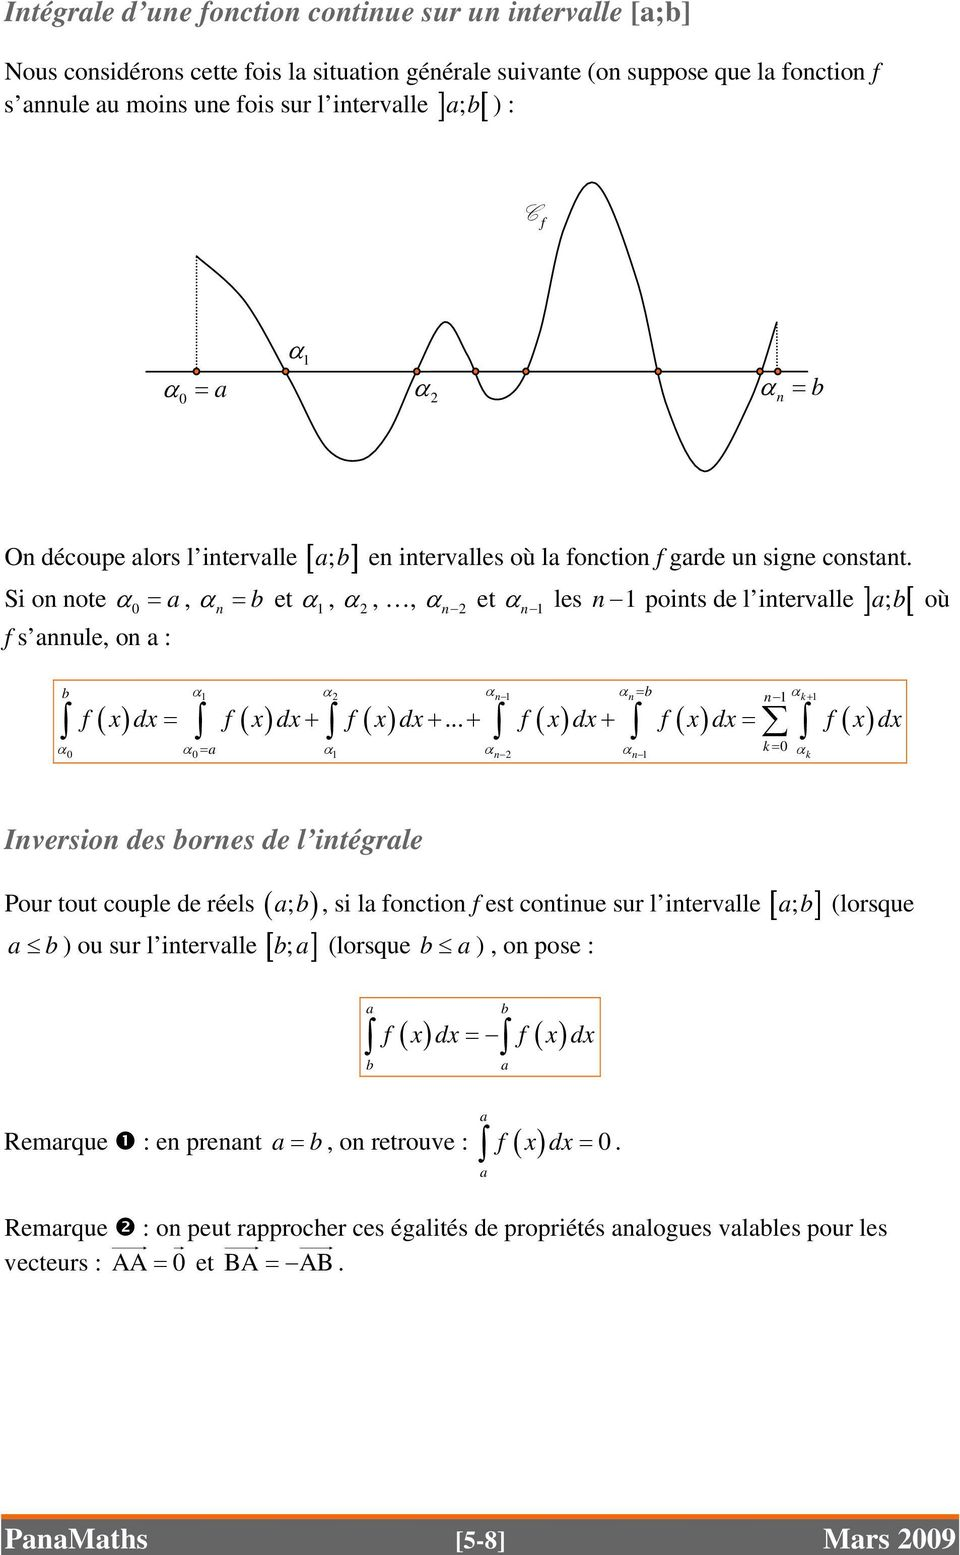 α les n 1 points de l intervlle ] ; [ Si on note α 0 =, α n = et α 1, 2 s nnule, on : α,, αn 2 et n 1 α1 α2 α n 1 α n= n 1 α k+ 1 = + + + + = k 0 0 0= = 1 n 2 n 1 k.